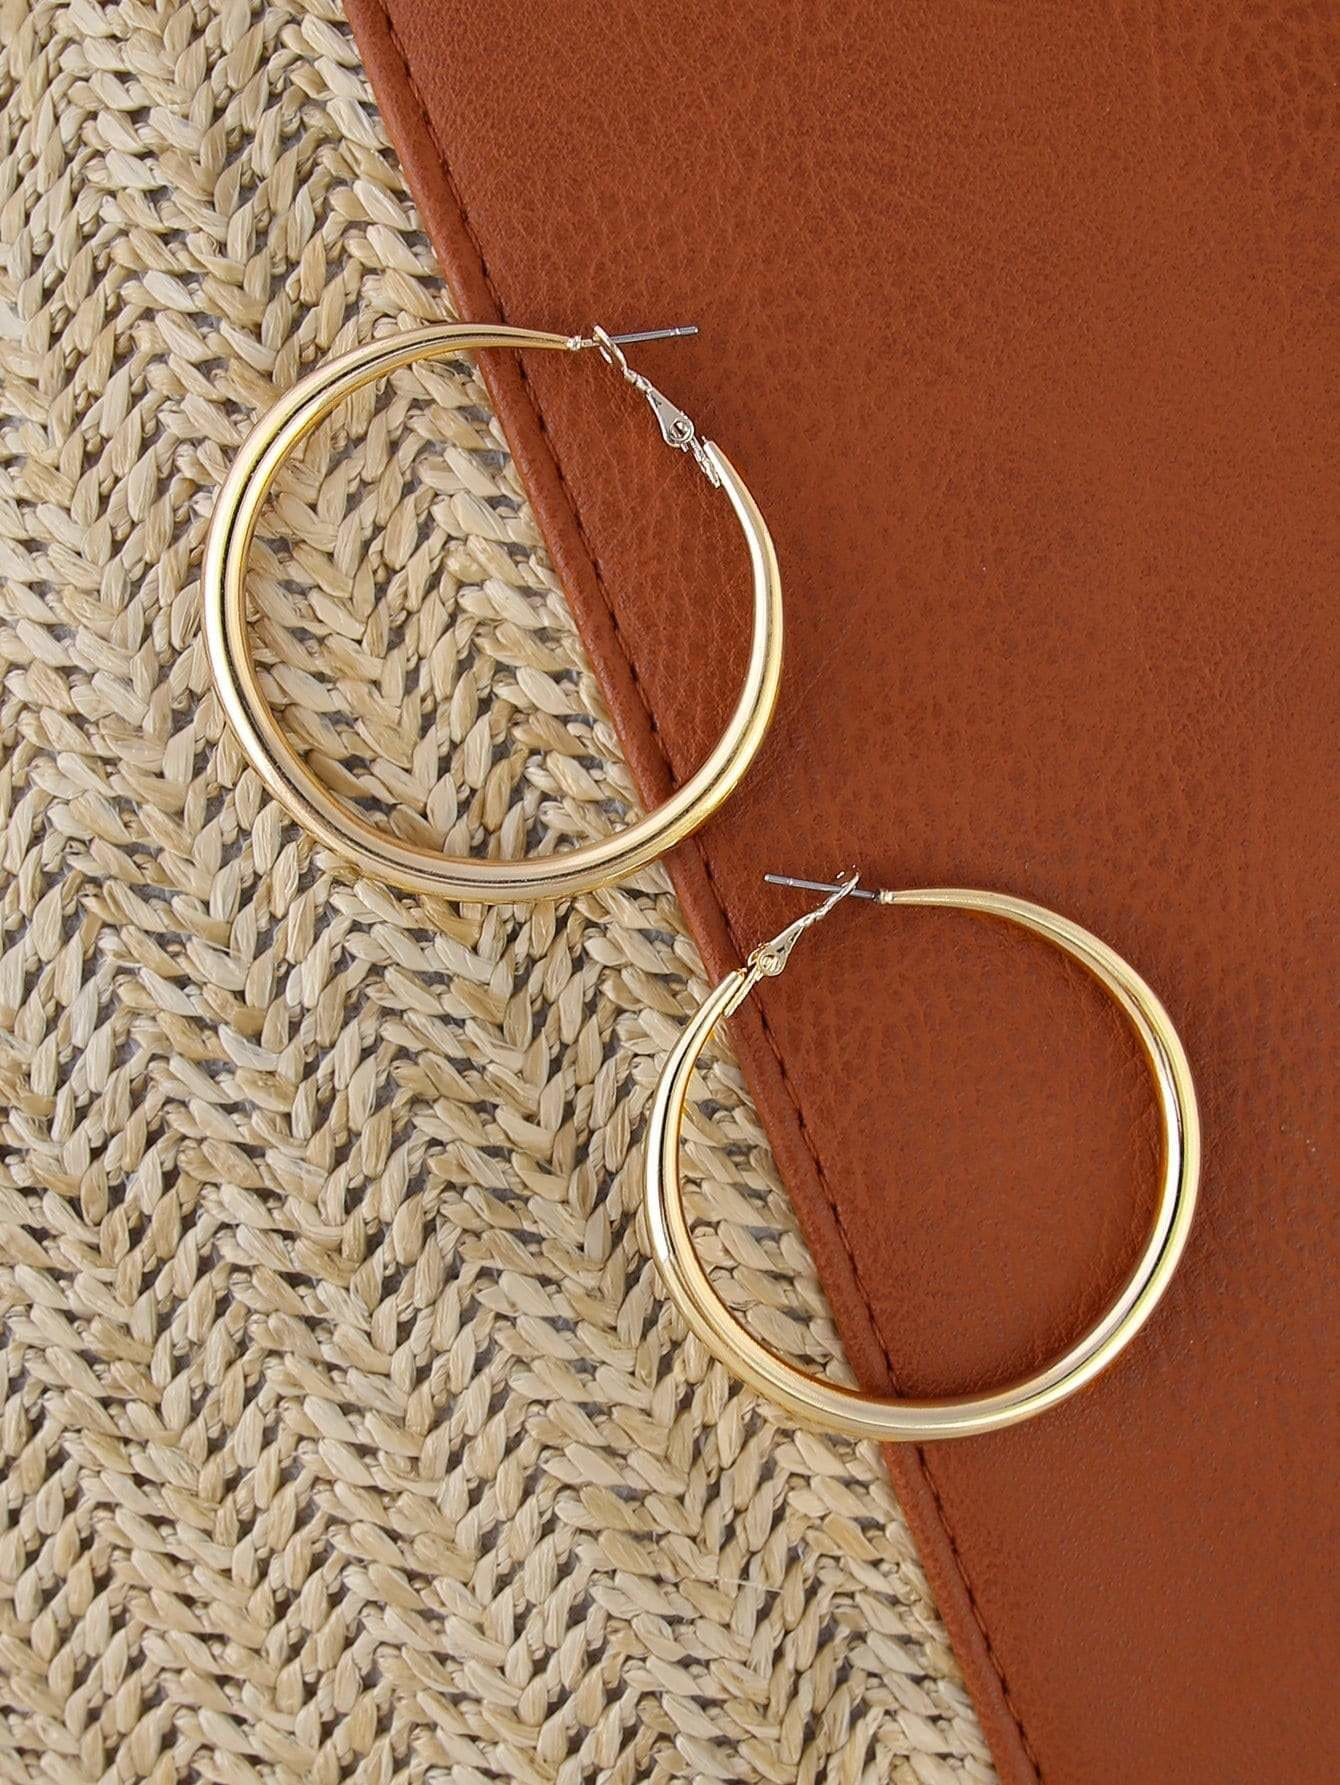 Medium Sized Gold Hoop Earrings - Earrings